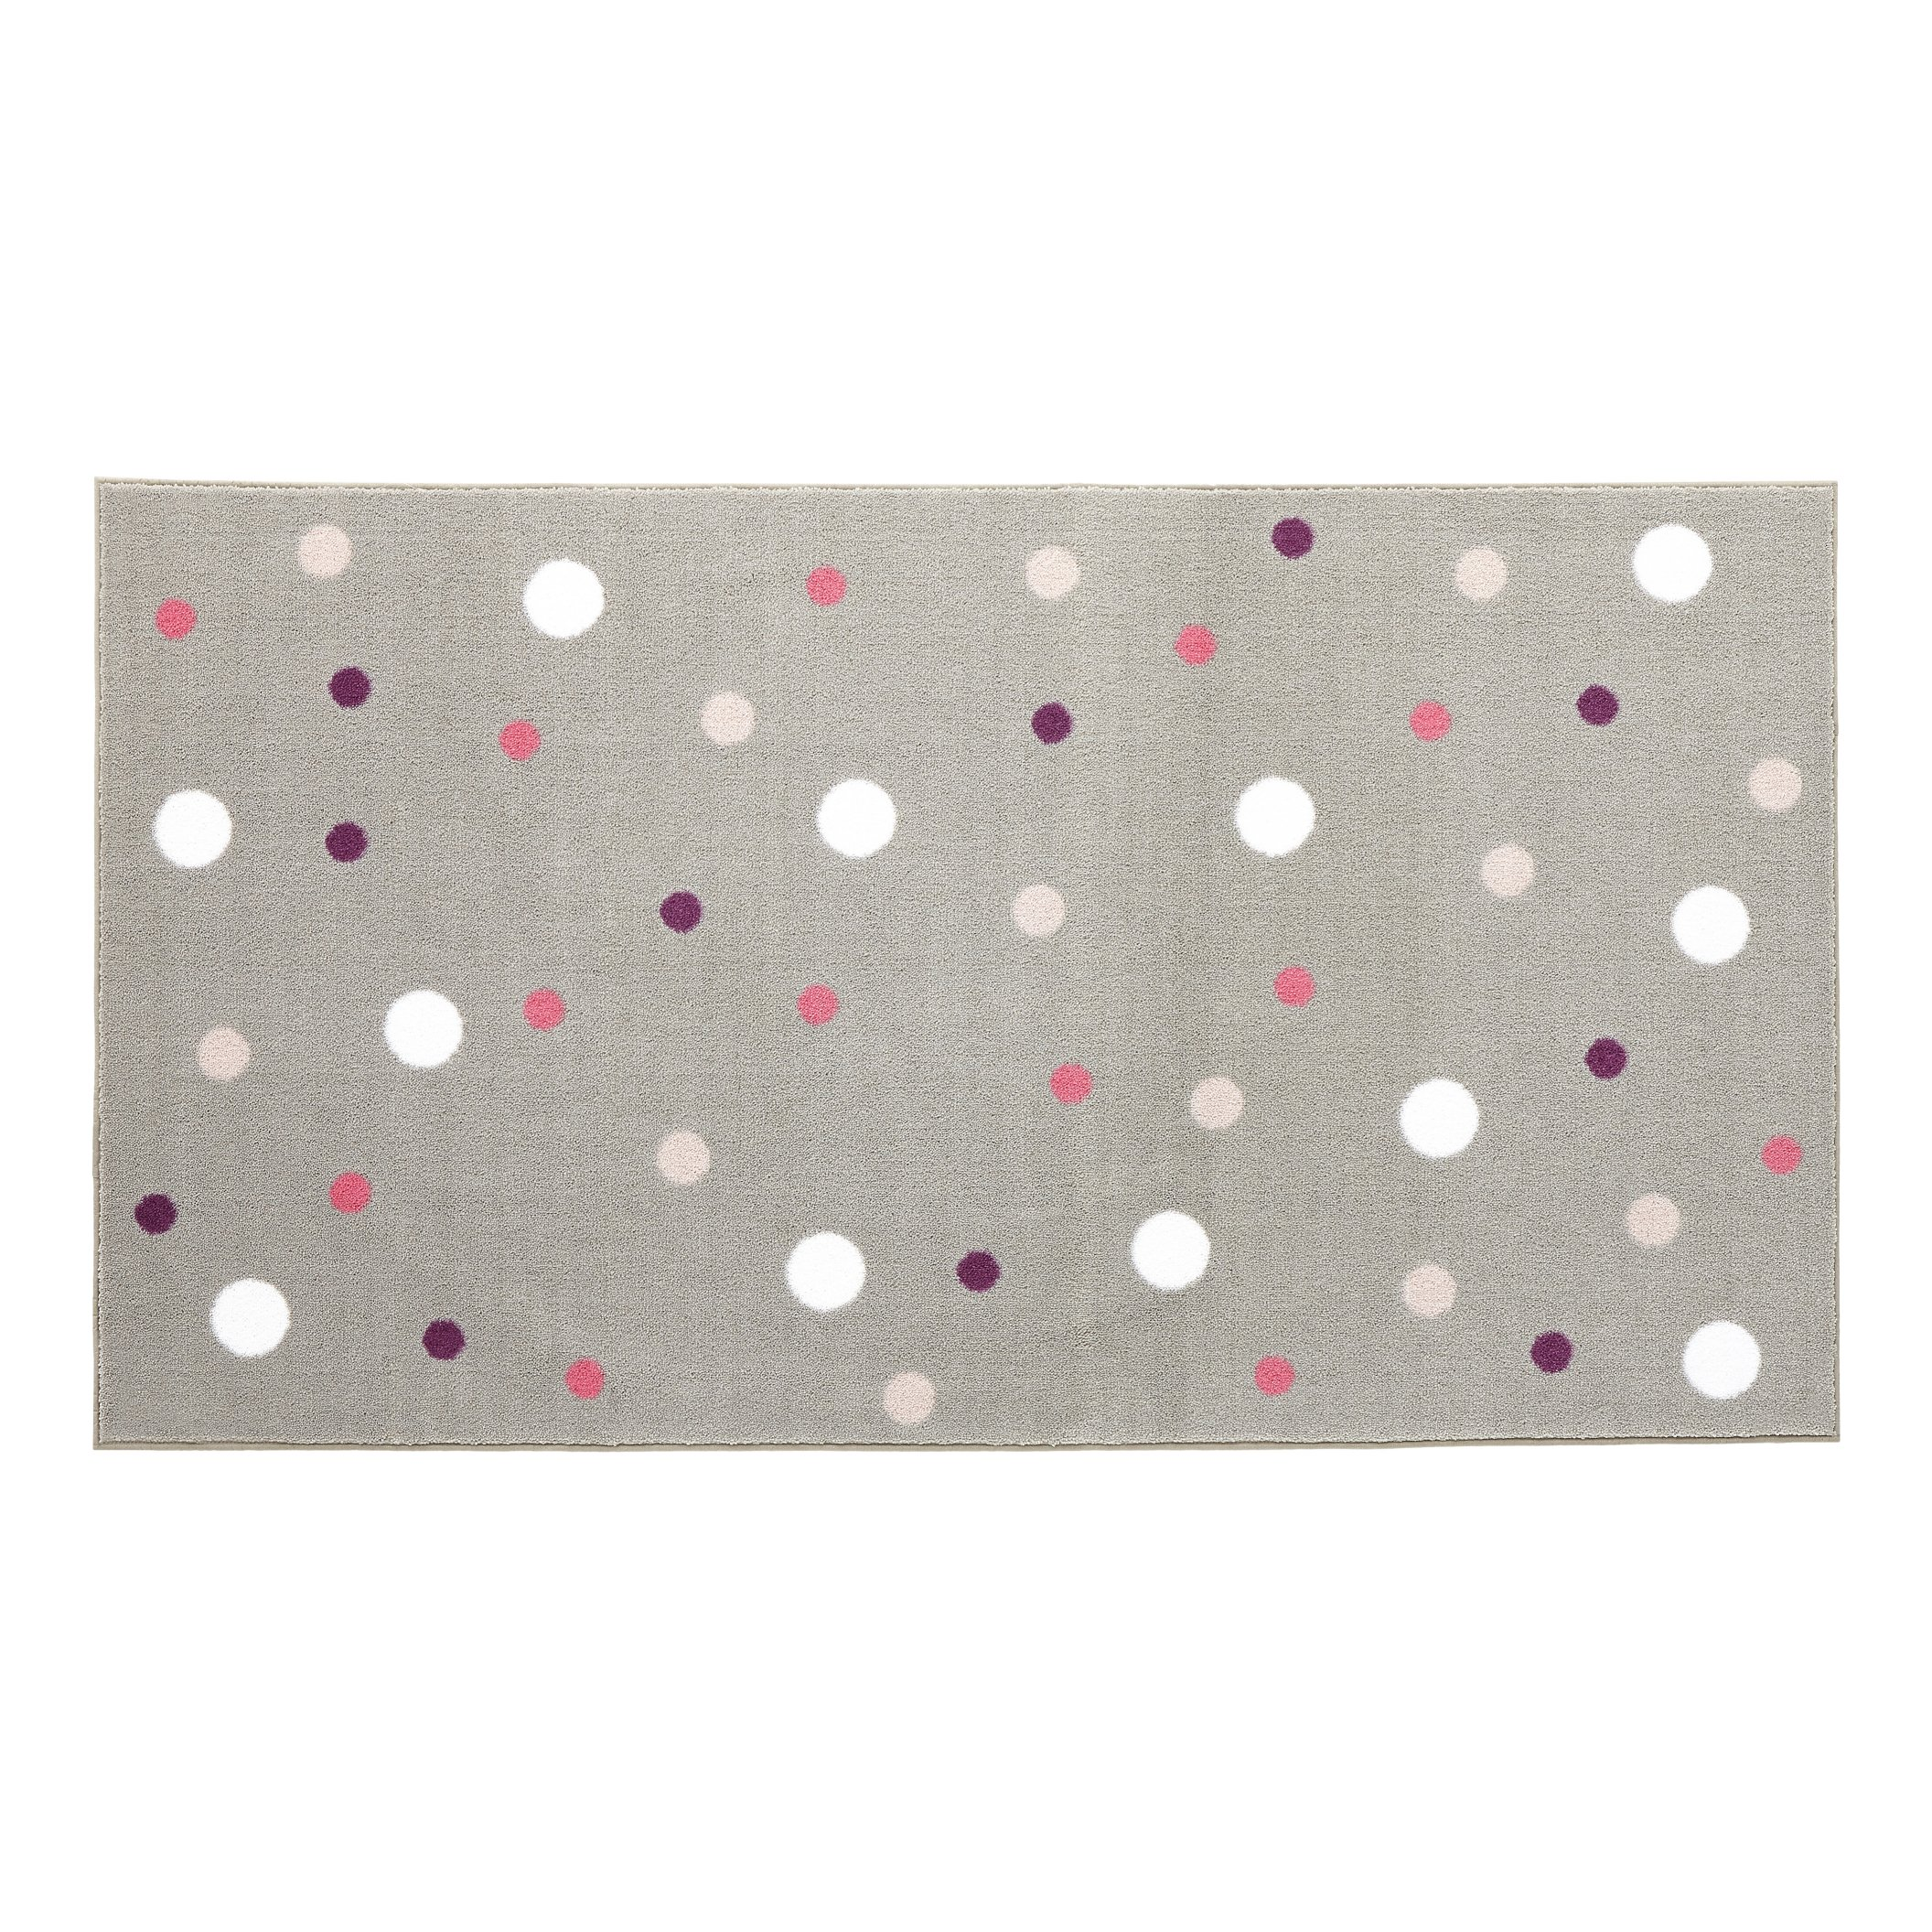 Multi Dot Rug - Pink by Lifetime Kidsrooms